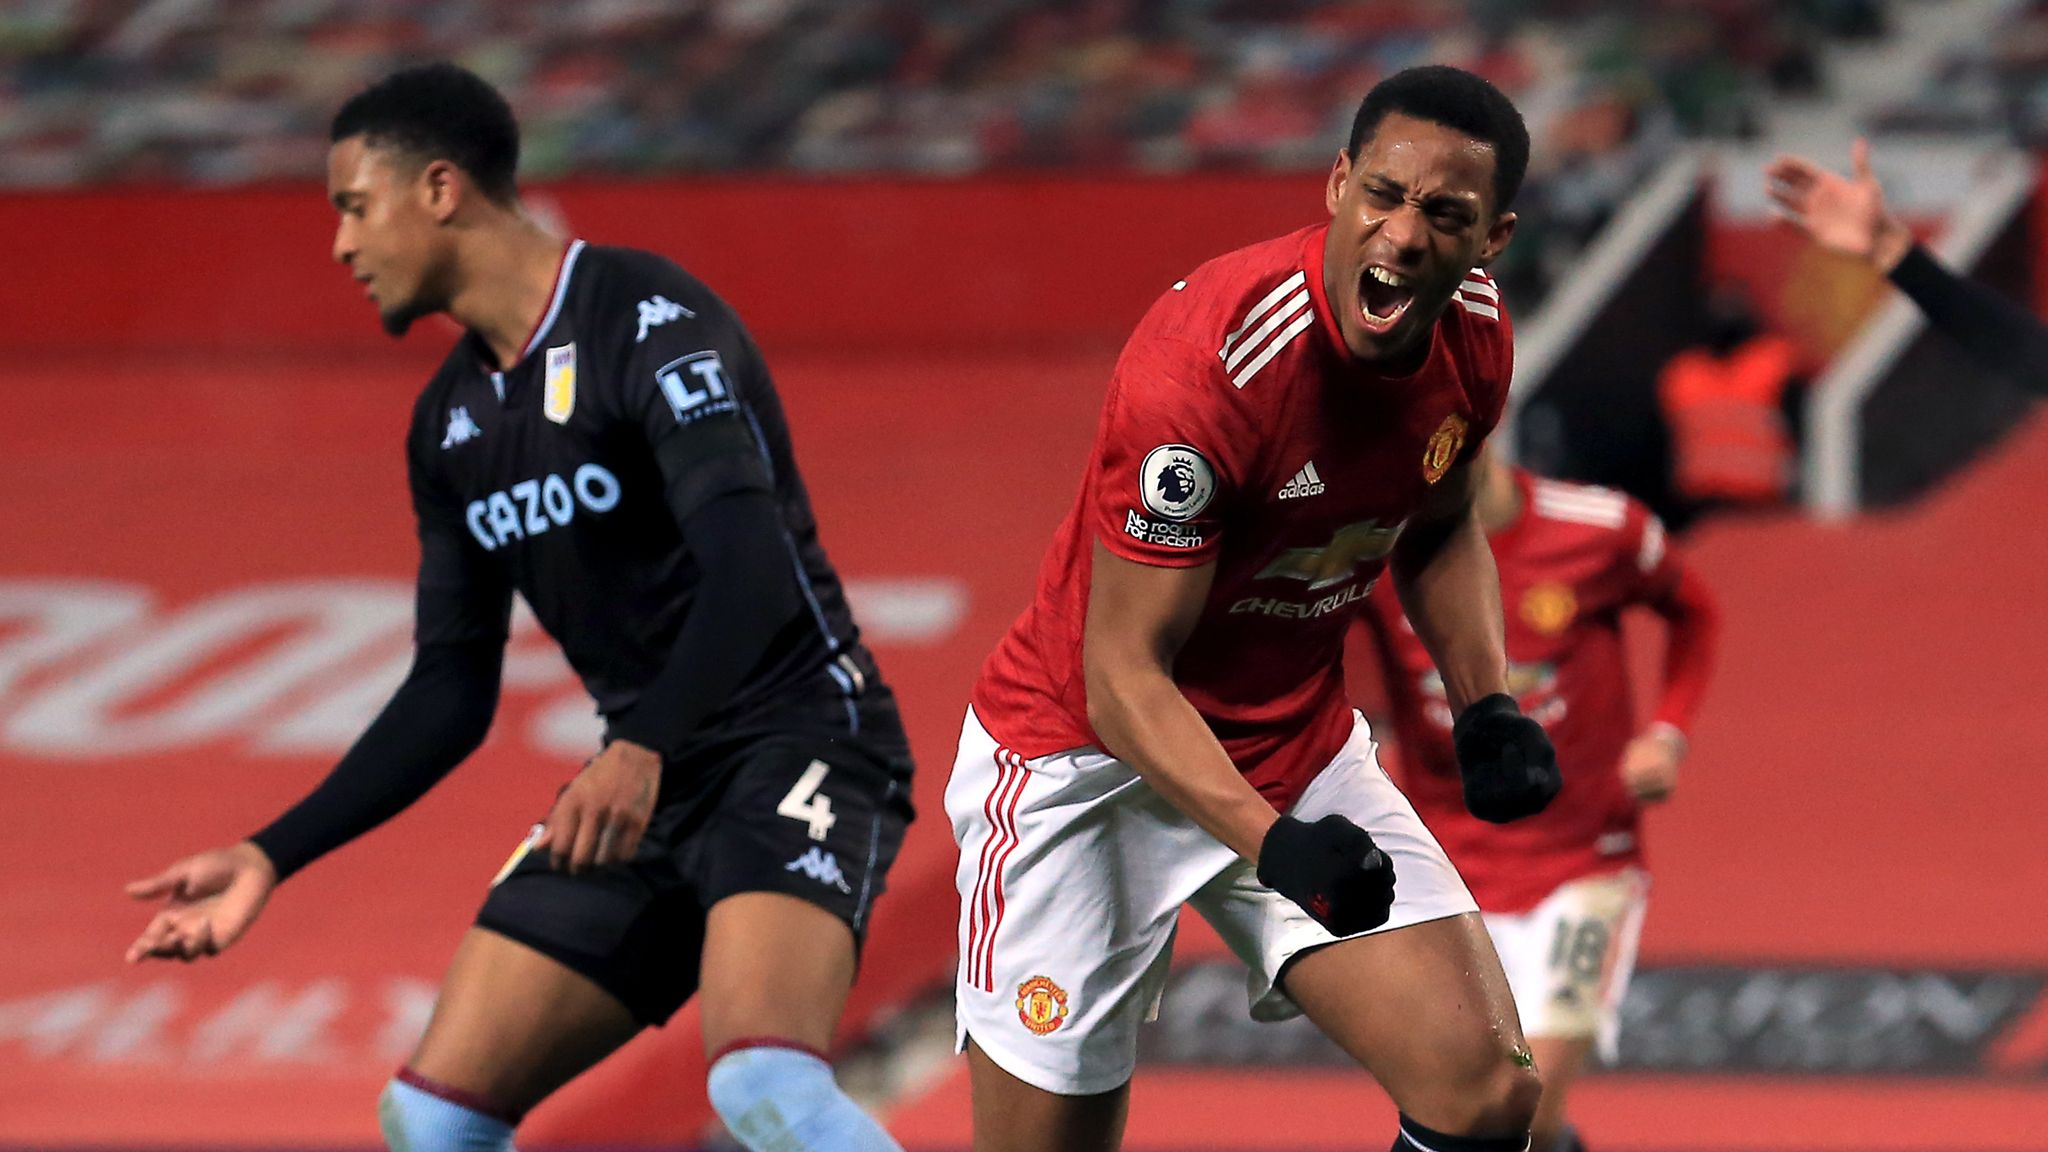 Man Utd Level On Points With Liverpool After Aston Villa Win How Ole Gunnar Solskjaer S Side Got Back On Track Football News Sky Sports